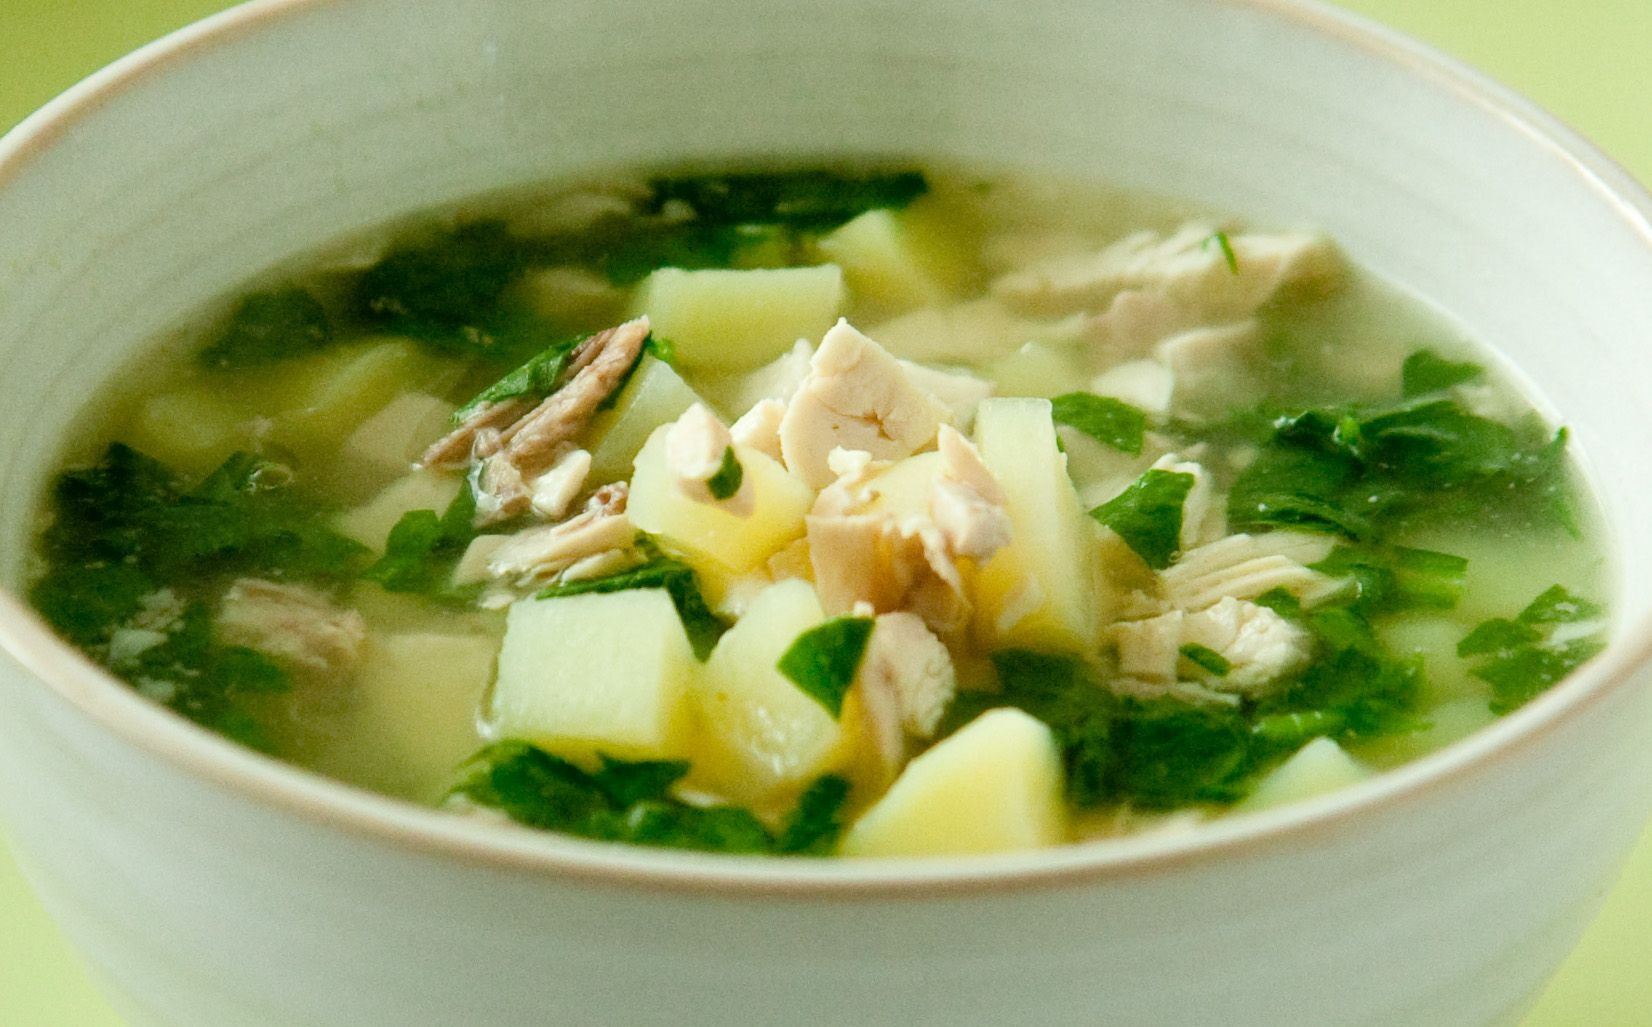 2 Cups Homemade Hcg Chicken Broth 100 G Chicken Breast Cut Up Into